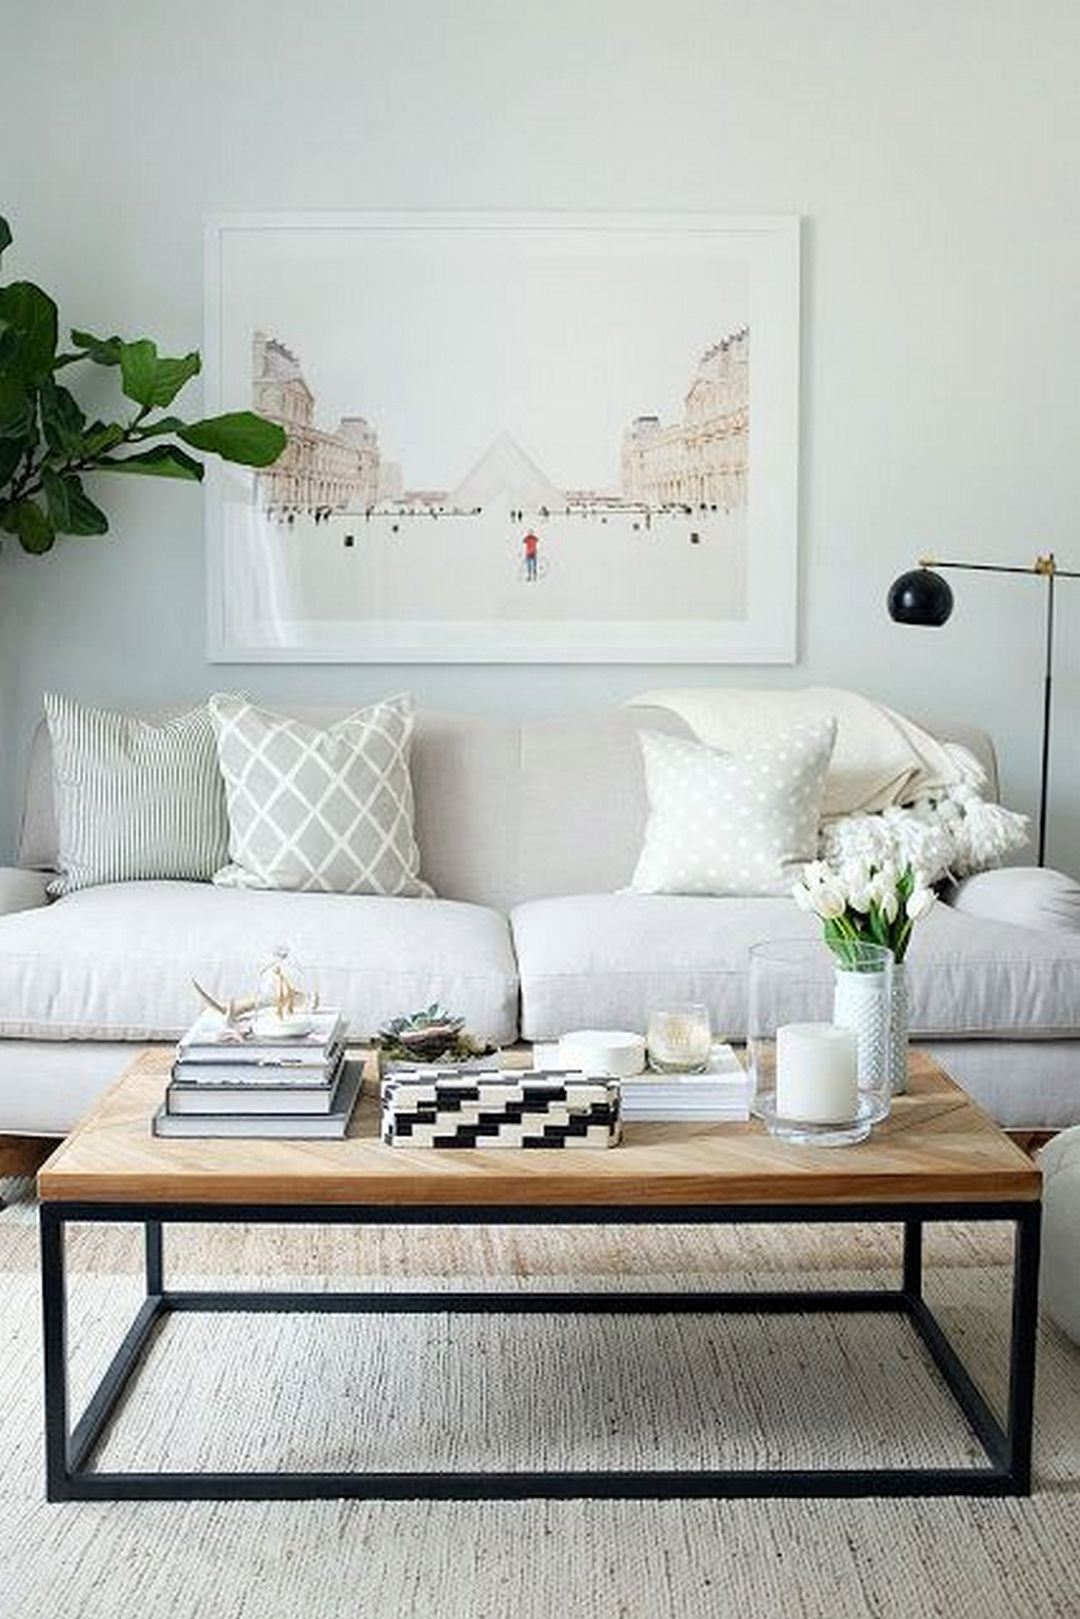 Living Room Coffee Table Styling Living Room Coffee Table Coffee Table Decor Living Room Living Room Designs [ 4971 x 3314 Pixel ]